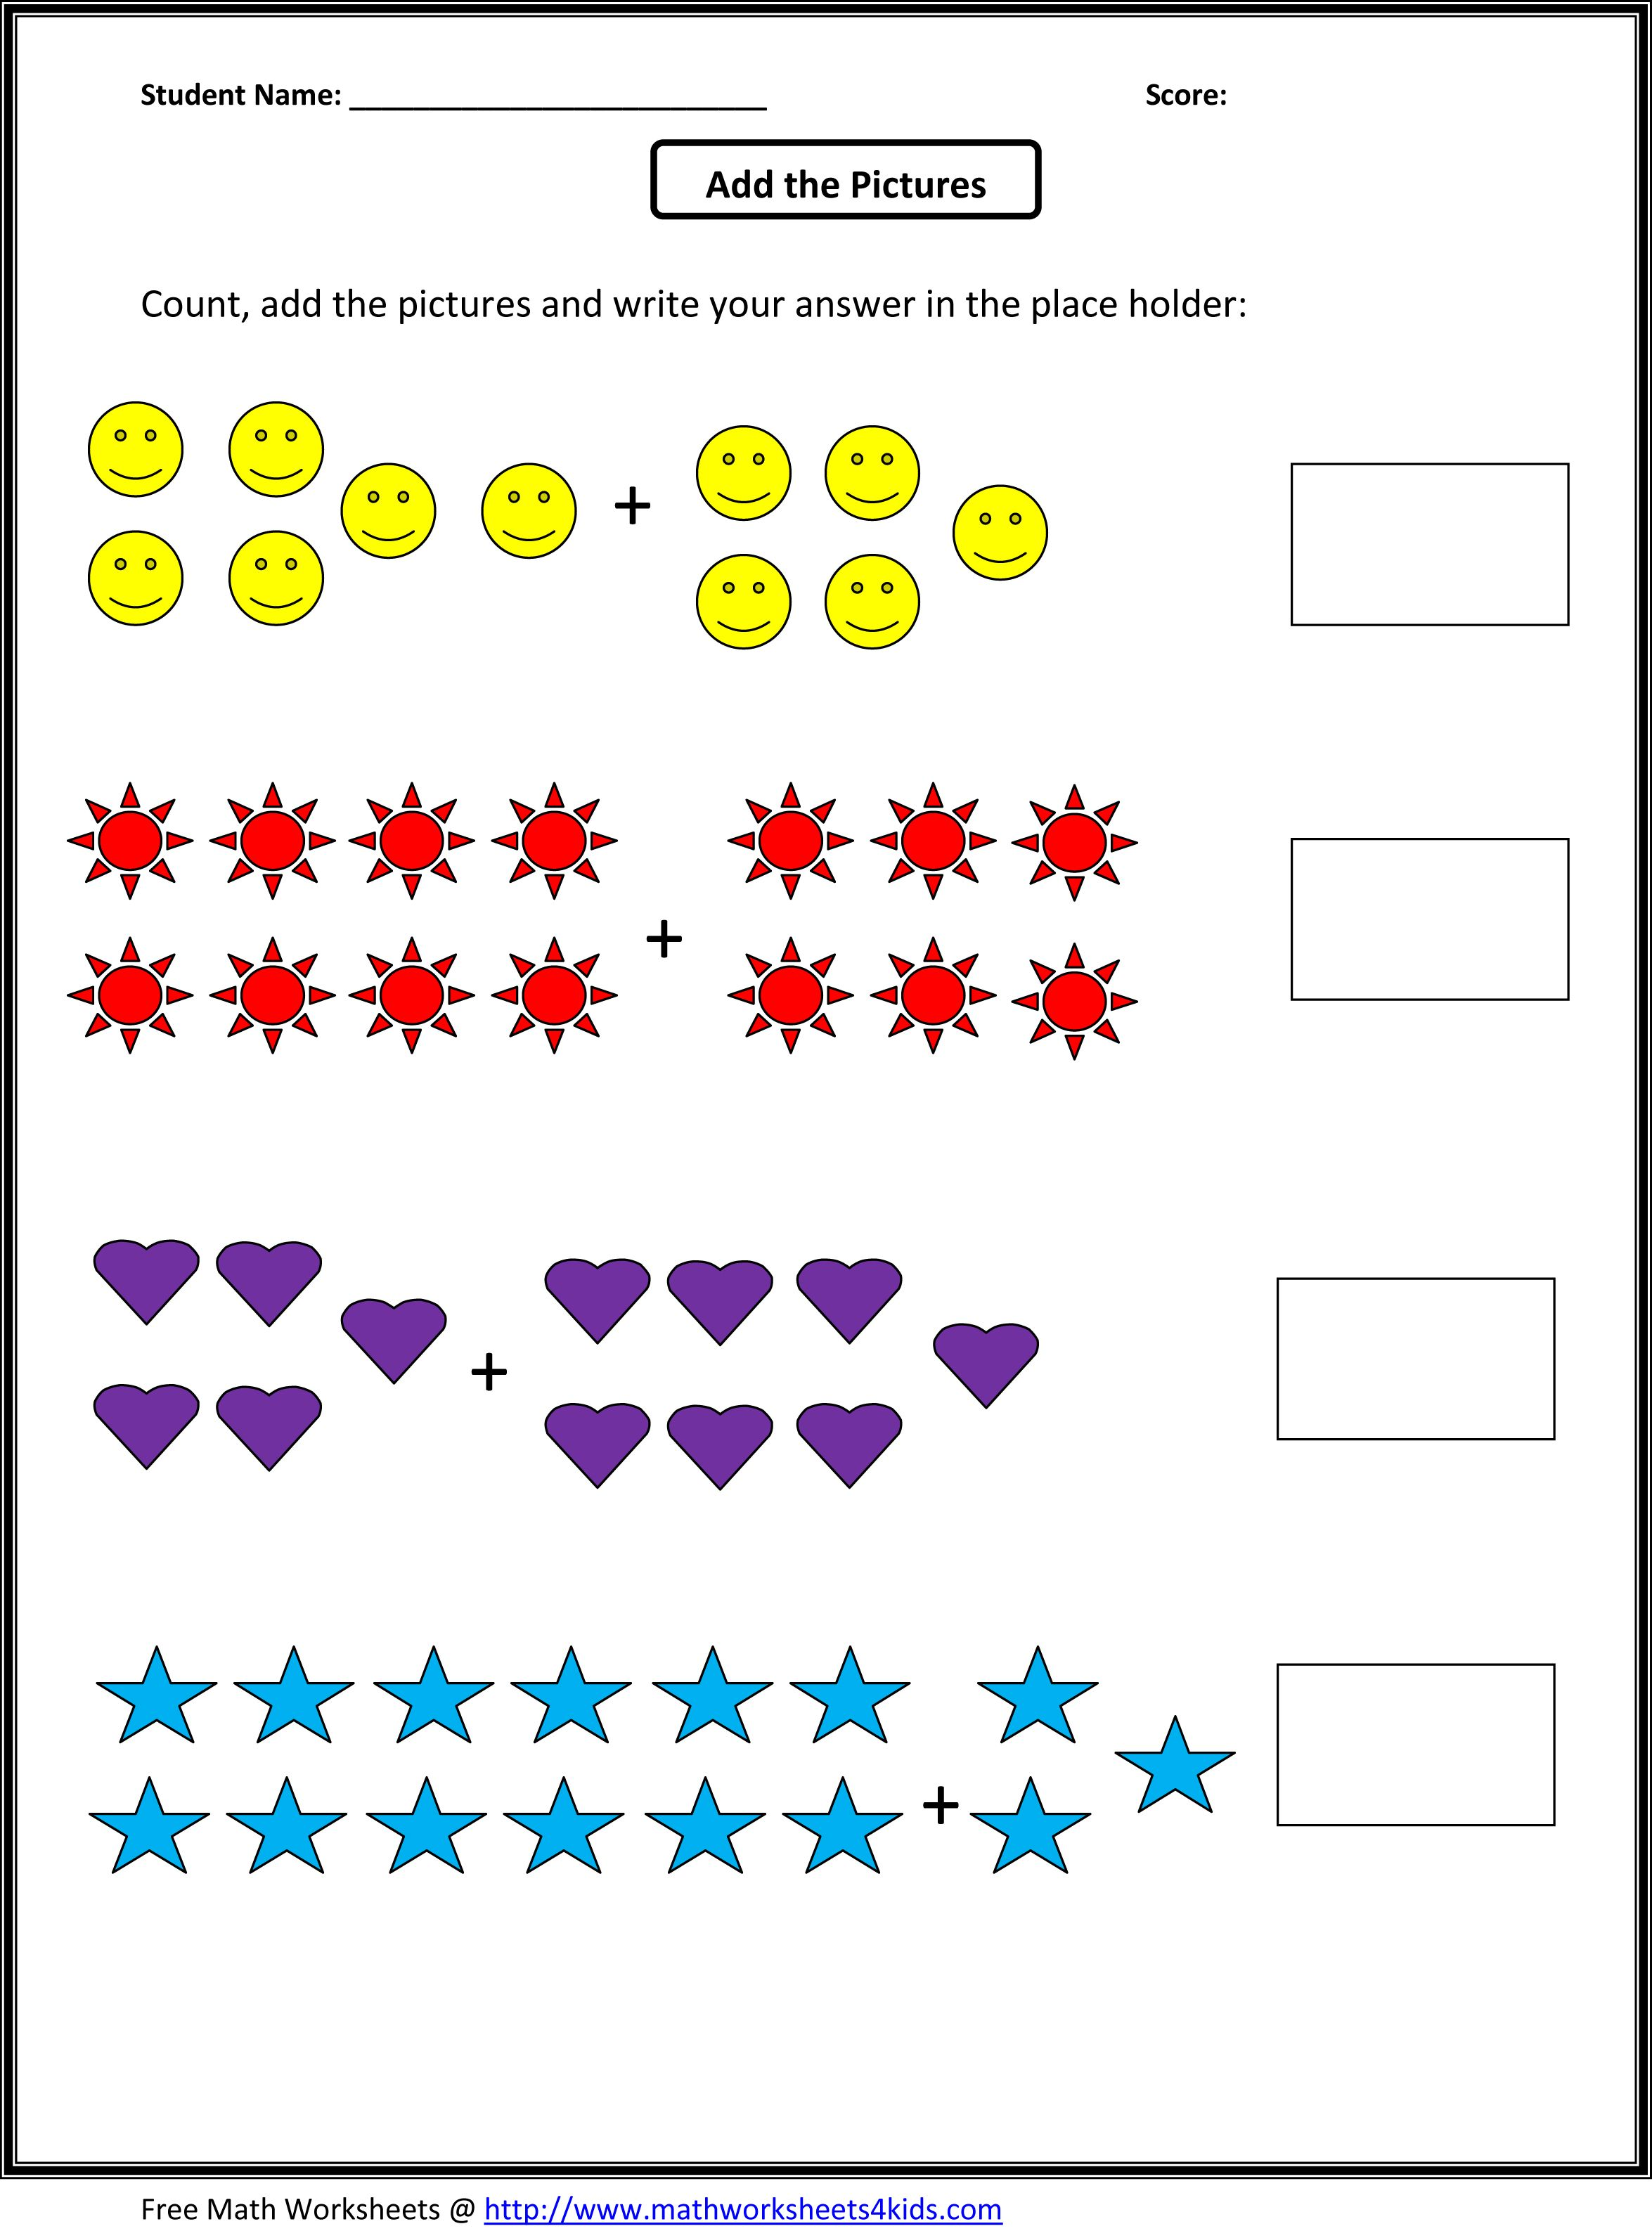 grade 1 addition math worksheets – First Grade Addition Worksheets